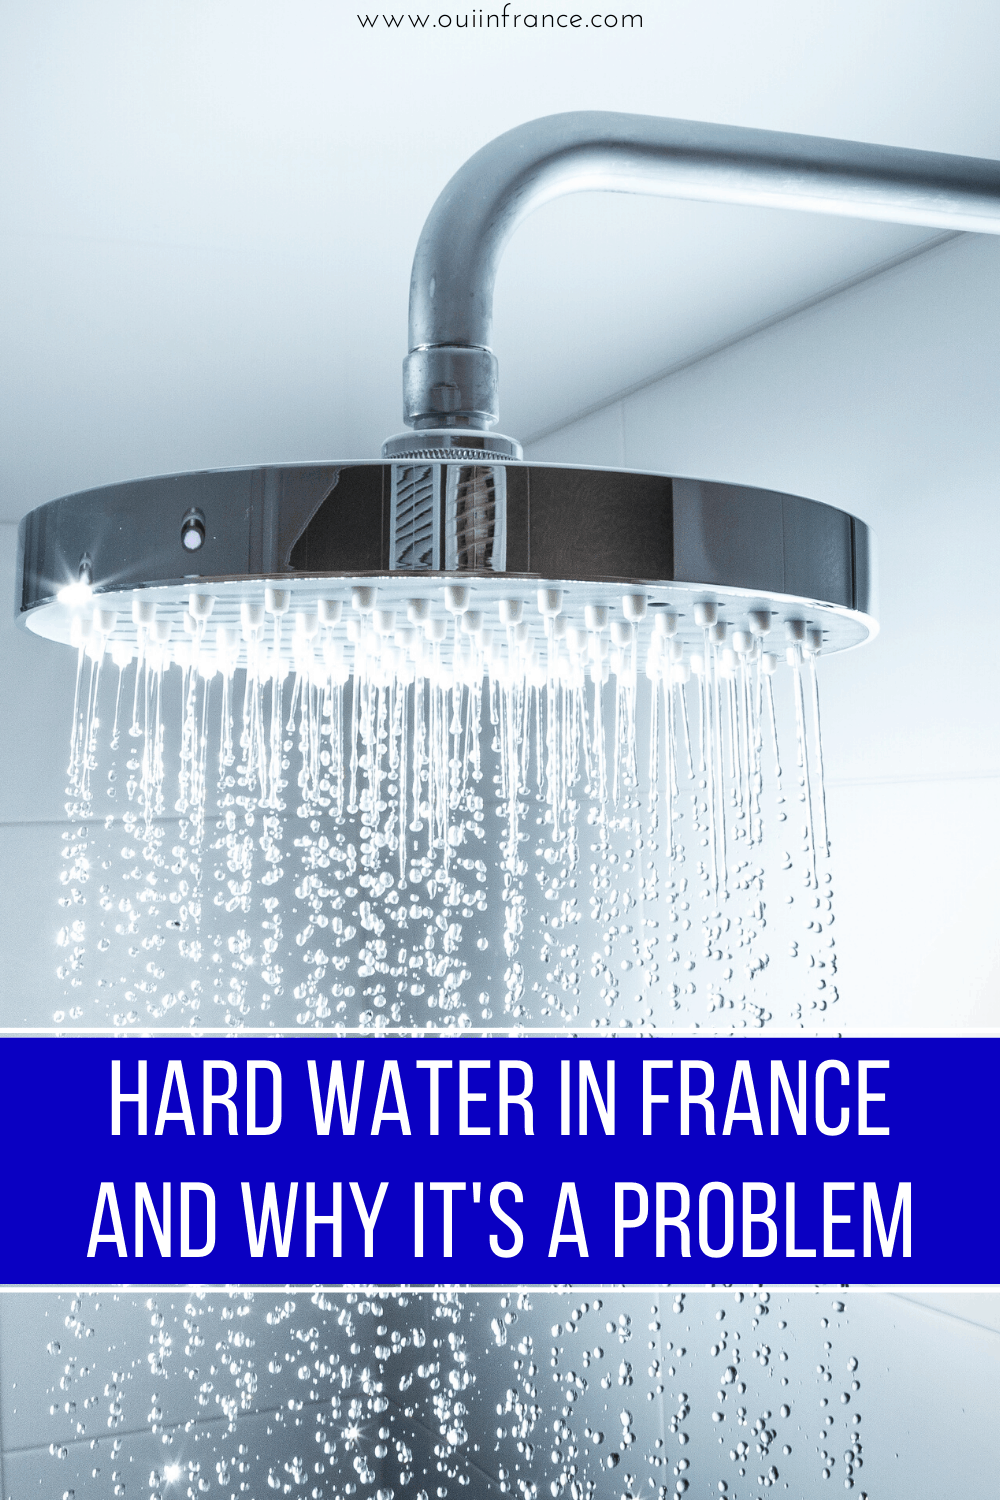 hard water in france and why it's a problem